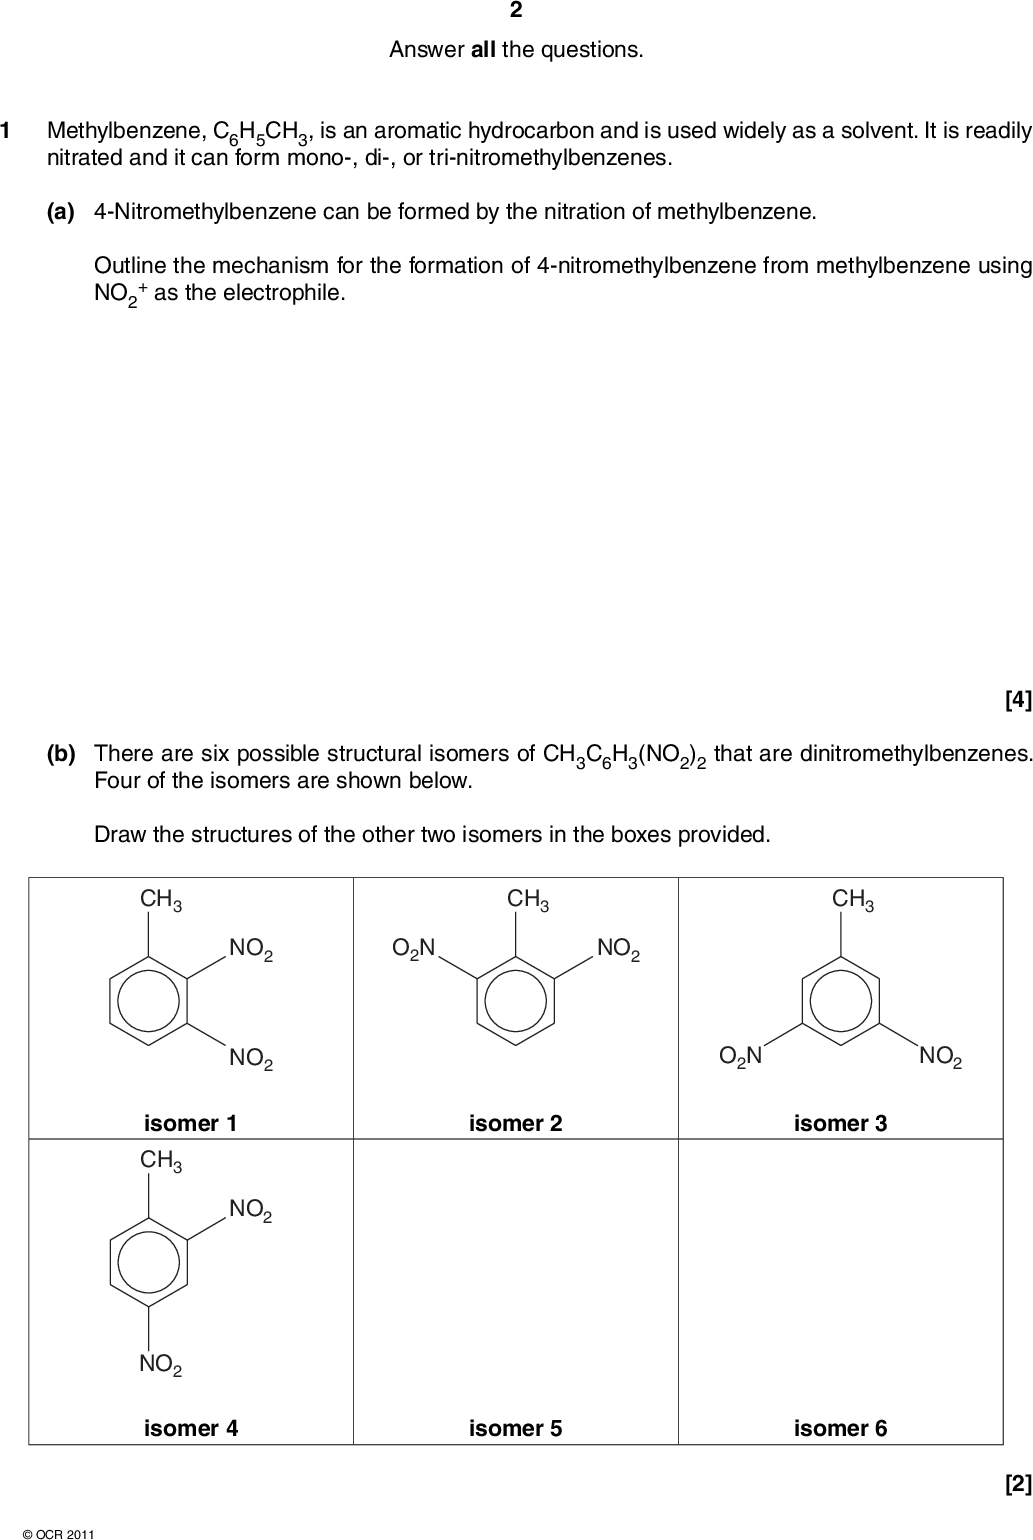 Answer all the questions. 1 Methylbenzene, C6H5CH3, is an aromatic hydrocarbon and is used widely as a solvent. It is readily nitrated and it can form mono-, di-, or tri-nitromethylbenzenes. (a) 4-Nitromethylbenzene can be formed by the nitration of methylbenzene. Outline the mechanism for the formation of 4-nitromethylbenzene from methylbenzene using NO2 + as the electrophile. (b) There are six possible structural isomers of CH3C6H3(NO2)2 that are dinitromethylbenzenes. Four of the isomers are shown below. Draw the structures of the other two isomers in the boxes provided. CH3 CH3 CH3 [4] NO2 NO2 isomer 1 CH3 NO2 NO2 isomer 4OCR 2011 O2N NO2 O2N NO2 isomer 2 isomer 3 isomer 5 isomer 6 [2]<br />  (c) A research chemist investigated whether dinitromethylbenzenes could be used in the manufacture of fibres. The chemist devised a two-stage synthesis of the condensation polymer below, starting from one of the isomers in part (b). N H N H N H N H For the first stage of the synthesis,Which of the isomers 1, 2, 3 or 4 could be used? Identify the product formed and state suitable reagents.Write an equation. For the second stage of the synthesis, Suggest an organic compound that could react with the organic product from the first stage to form the polymer. State the type of condensation polymer formed.[6]OCR 2011 [Total: 12] Turn over<br />